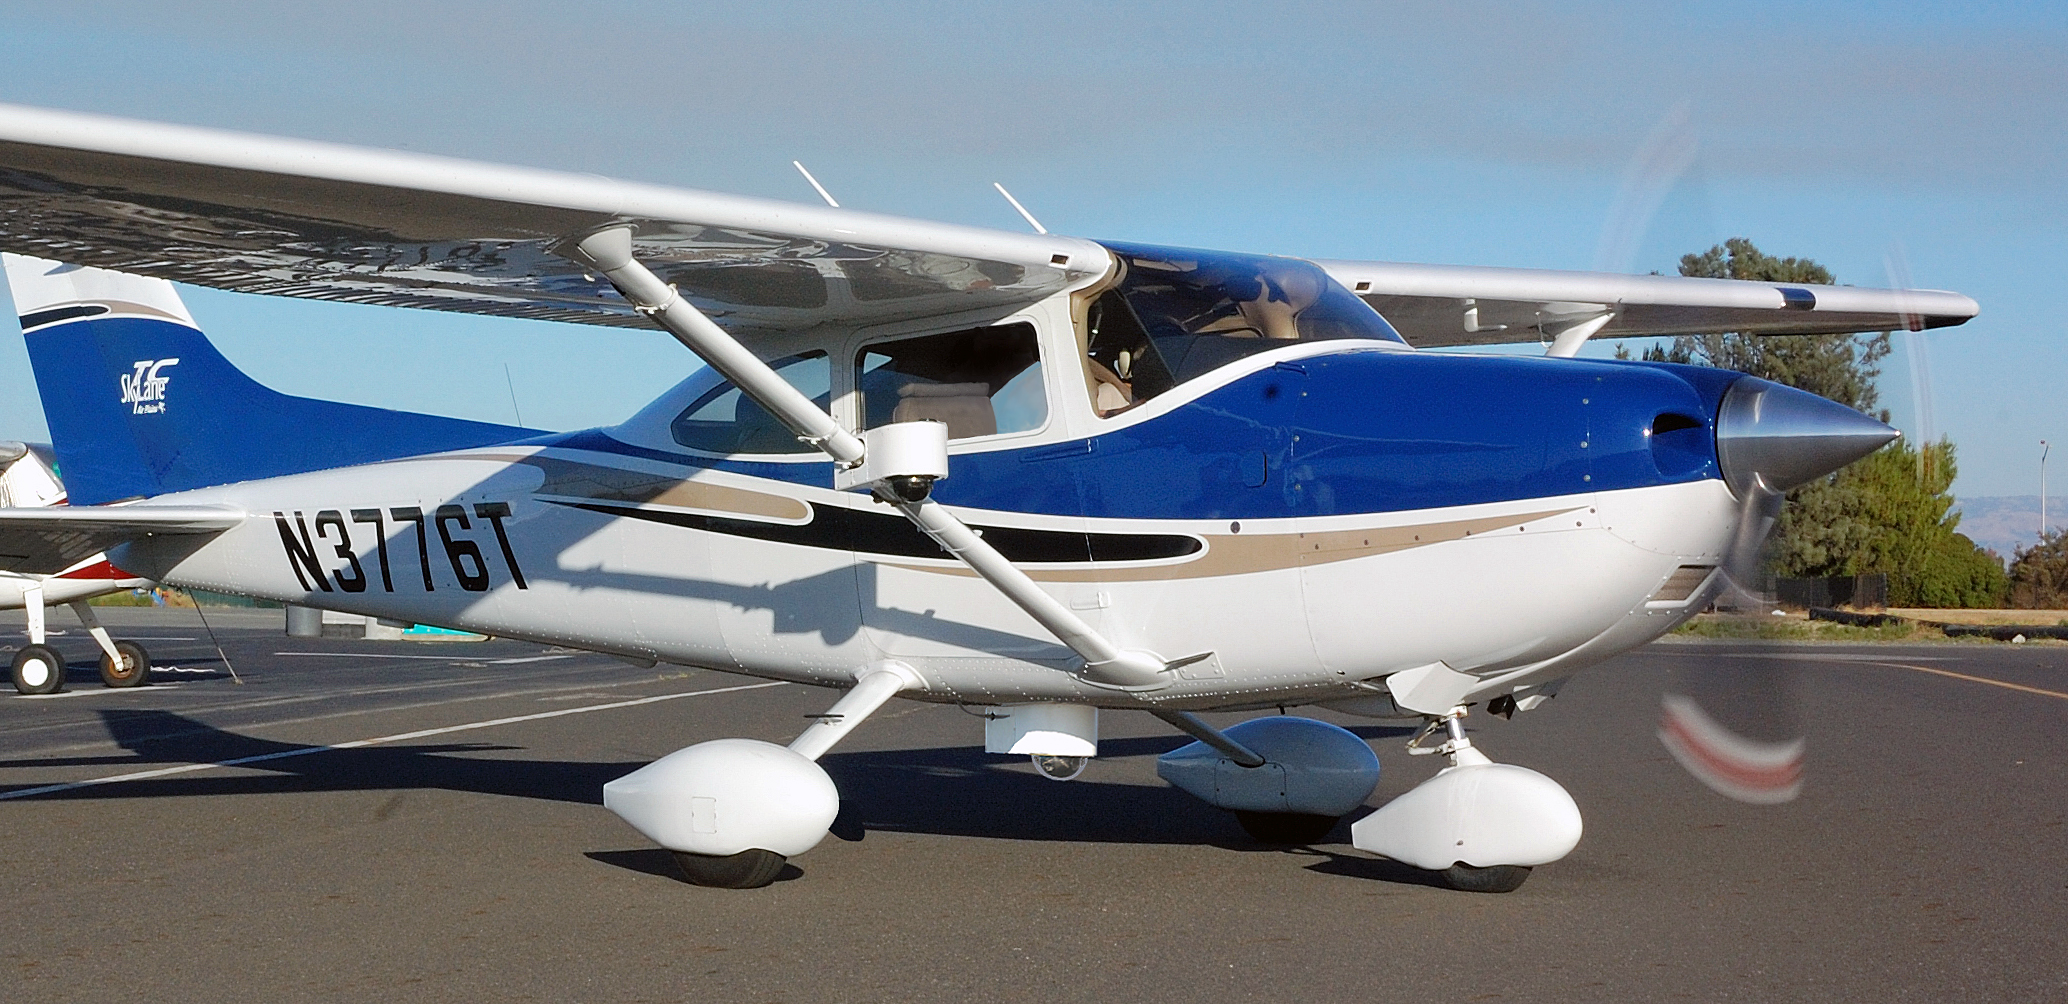 ... Is The World's Smallest Twin-Engine Manned Airplane   GadgetKing.com